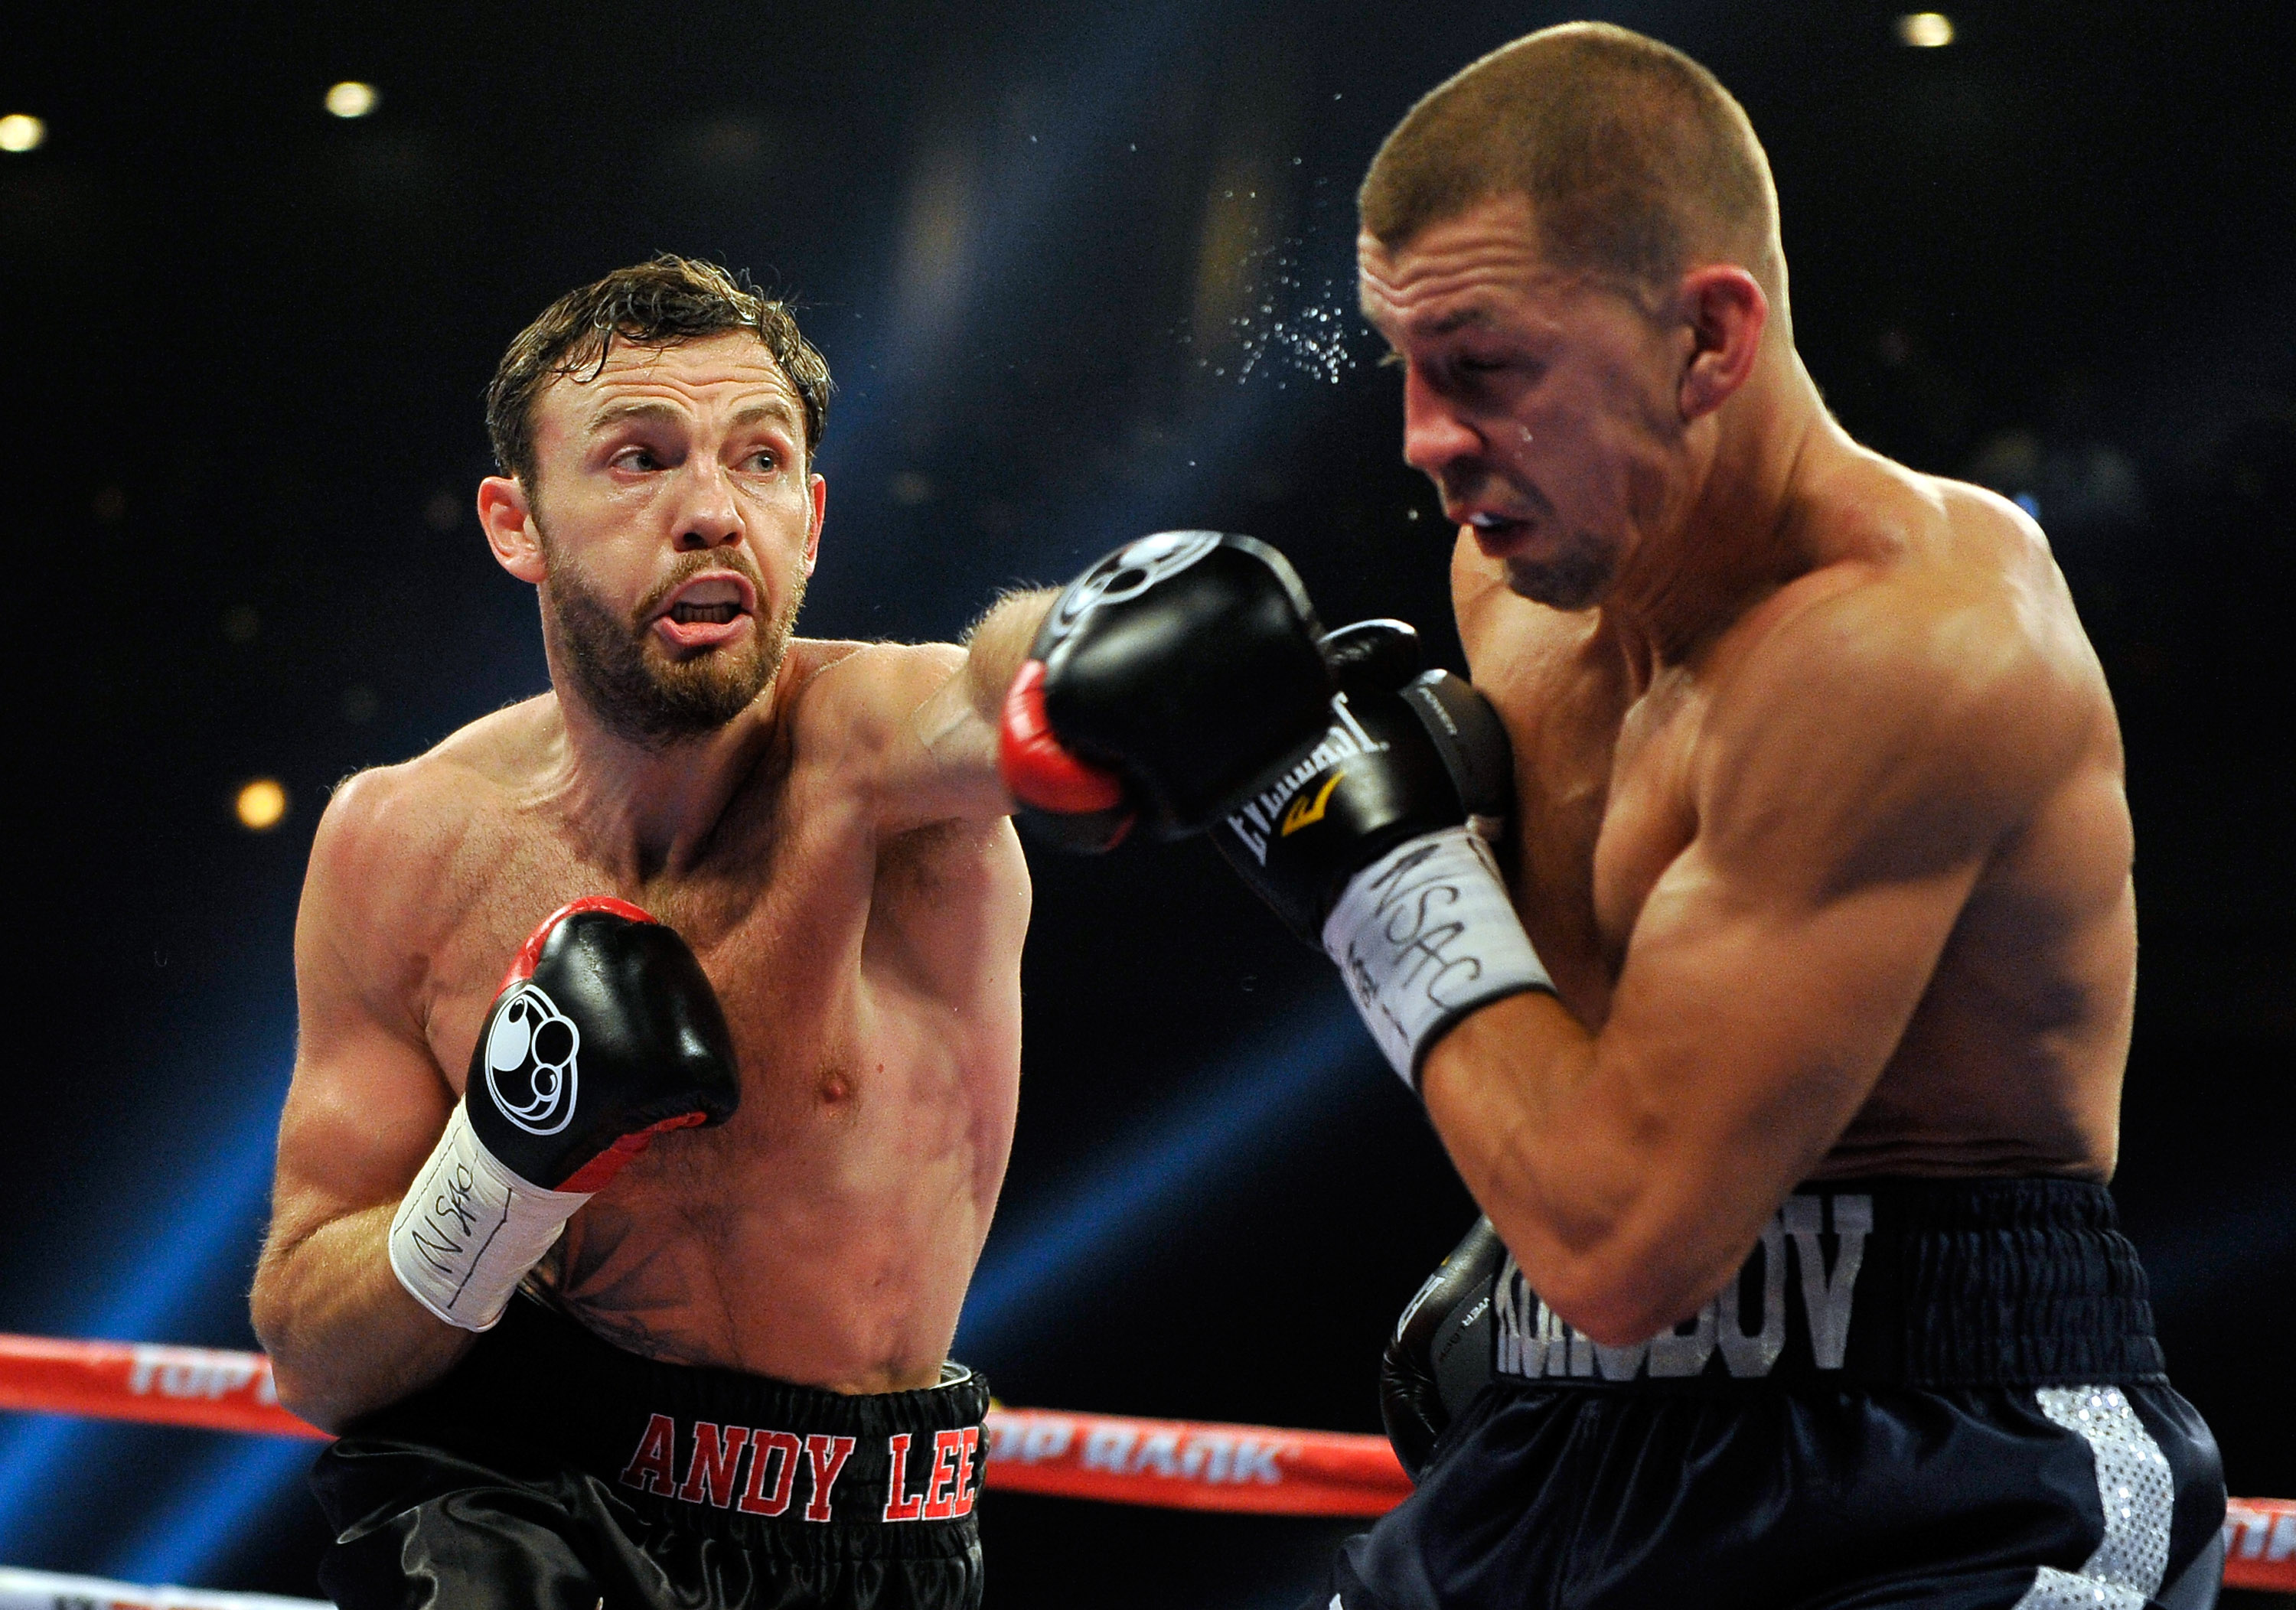 Andy Lee, andy lee boxer, andy lee korobov, andy lee next fight